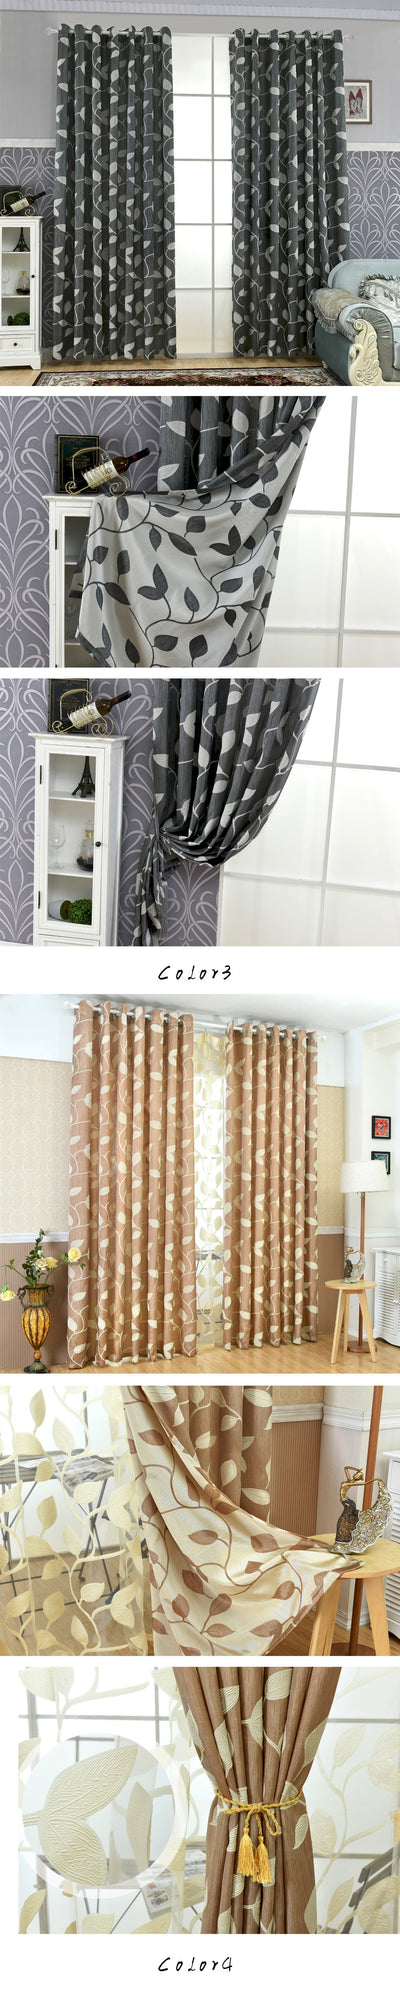 NAPEARL European jacquard curtains kitchen door balcony curtains fabrics for window